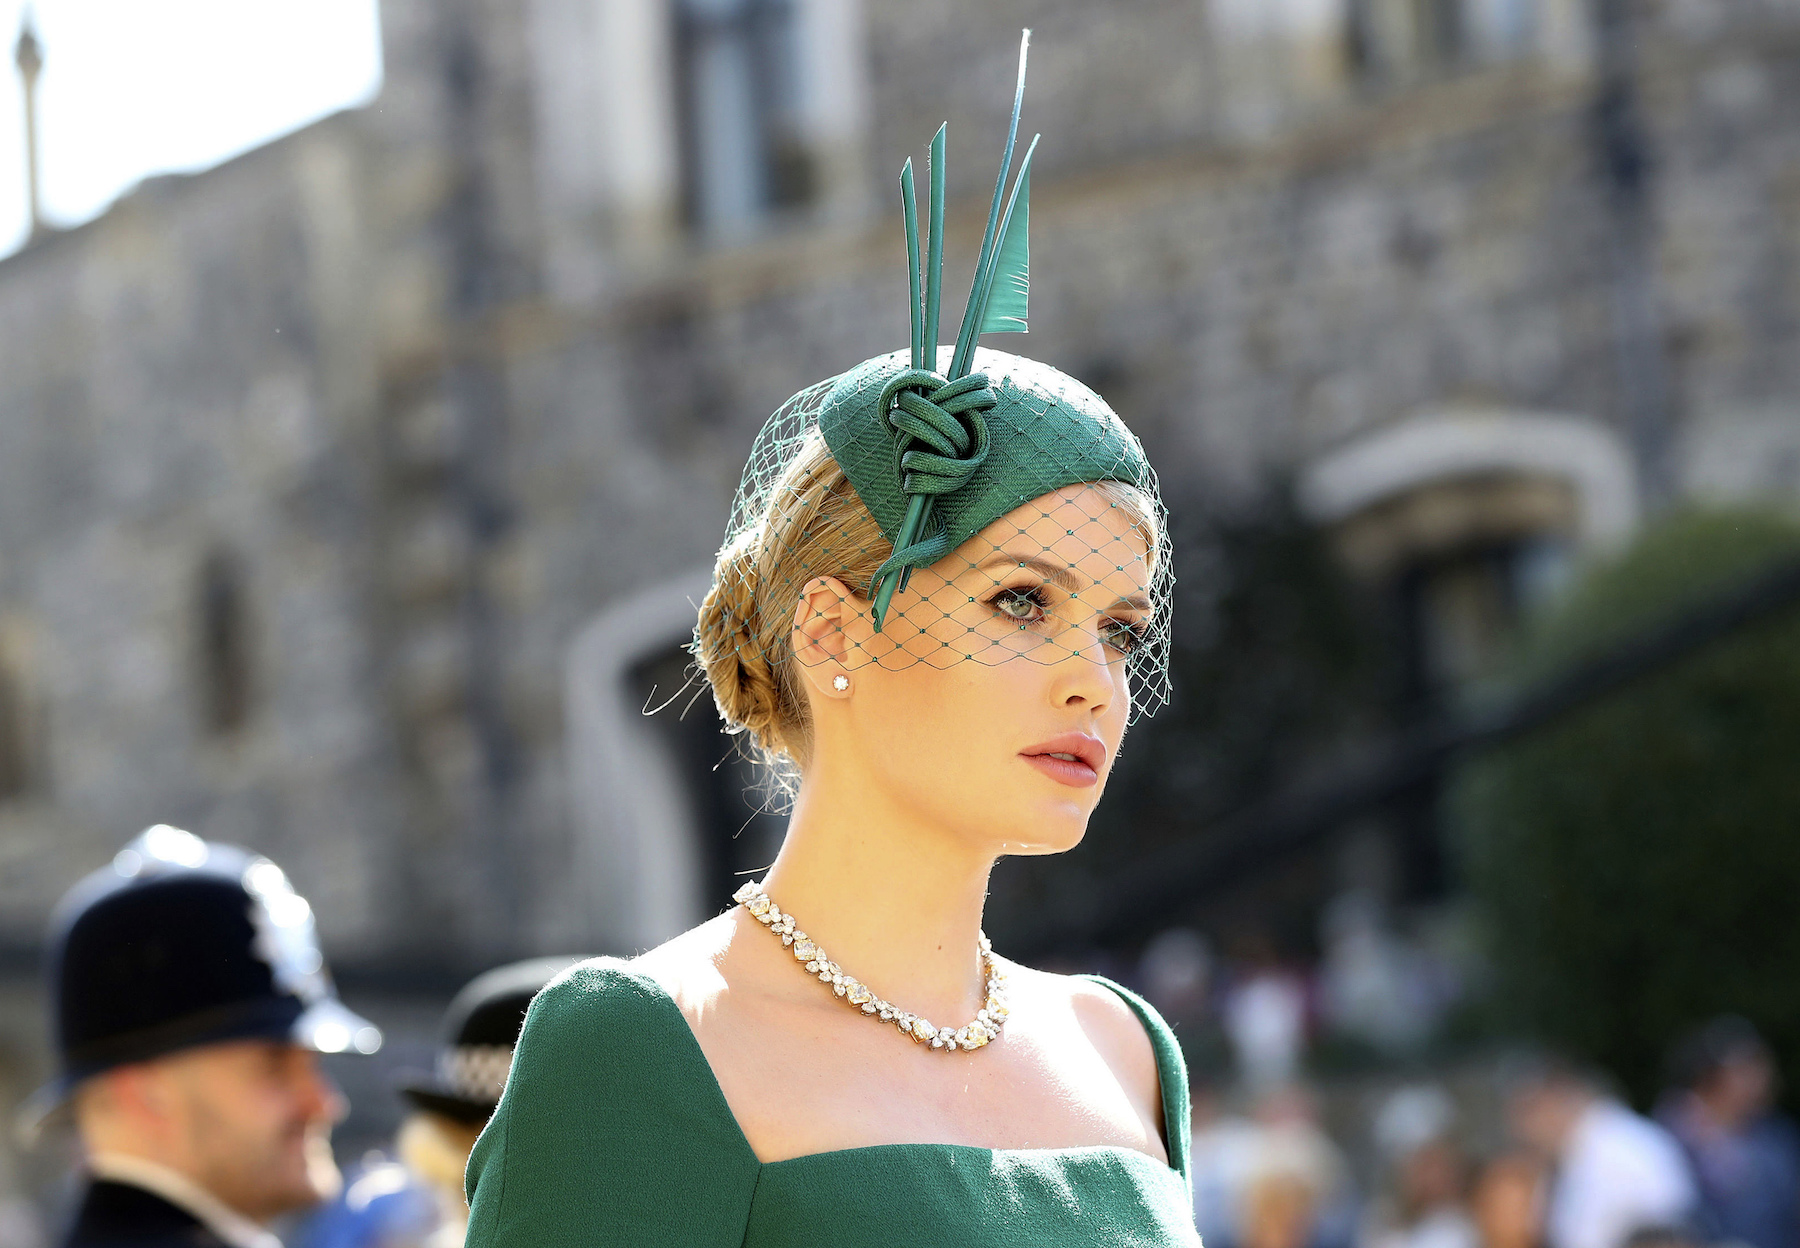 "<div class=""meta image-caption""><div class=""origin-logo origin-image ap""><span>AP</span></div><span class=""caption-text"">Lady Kitty Spencer arrives at St George's Chapel at Windsor Castle for the wedding of Meghan Markle and Prince Harry. (Gareth Fuller/PA Wire)</span></div>"